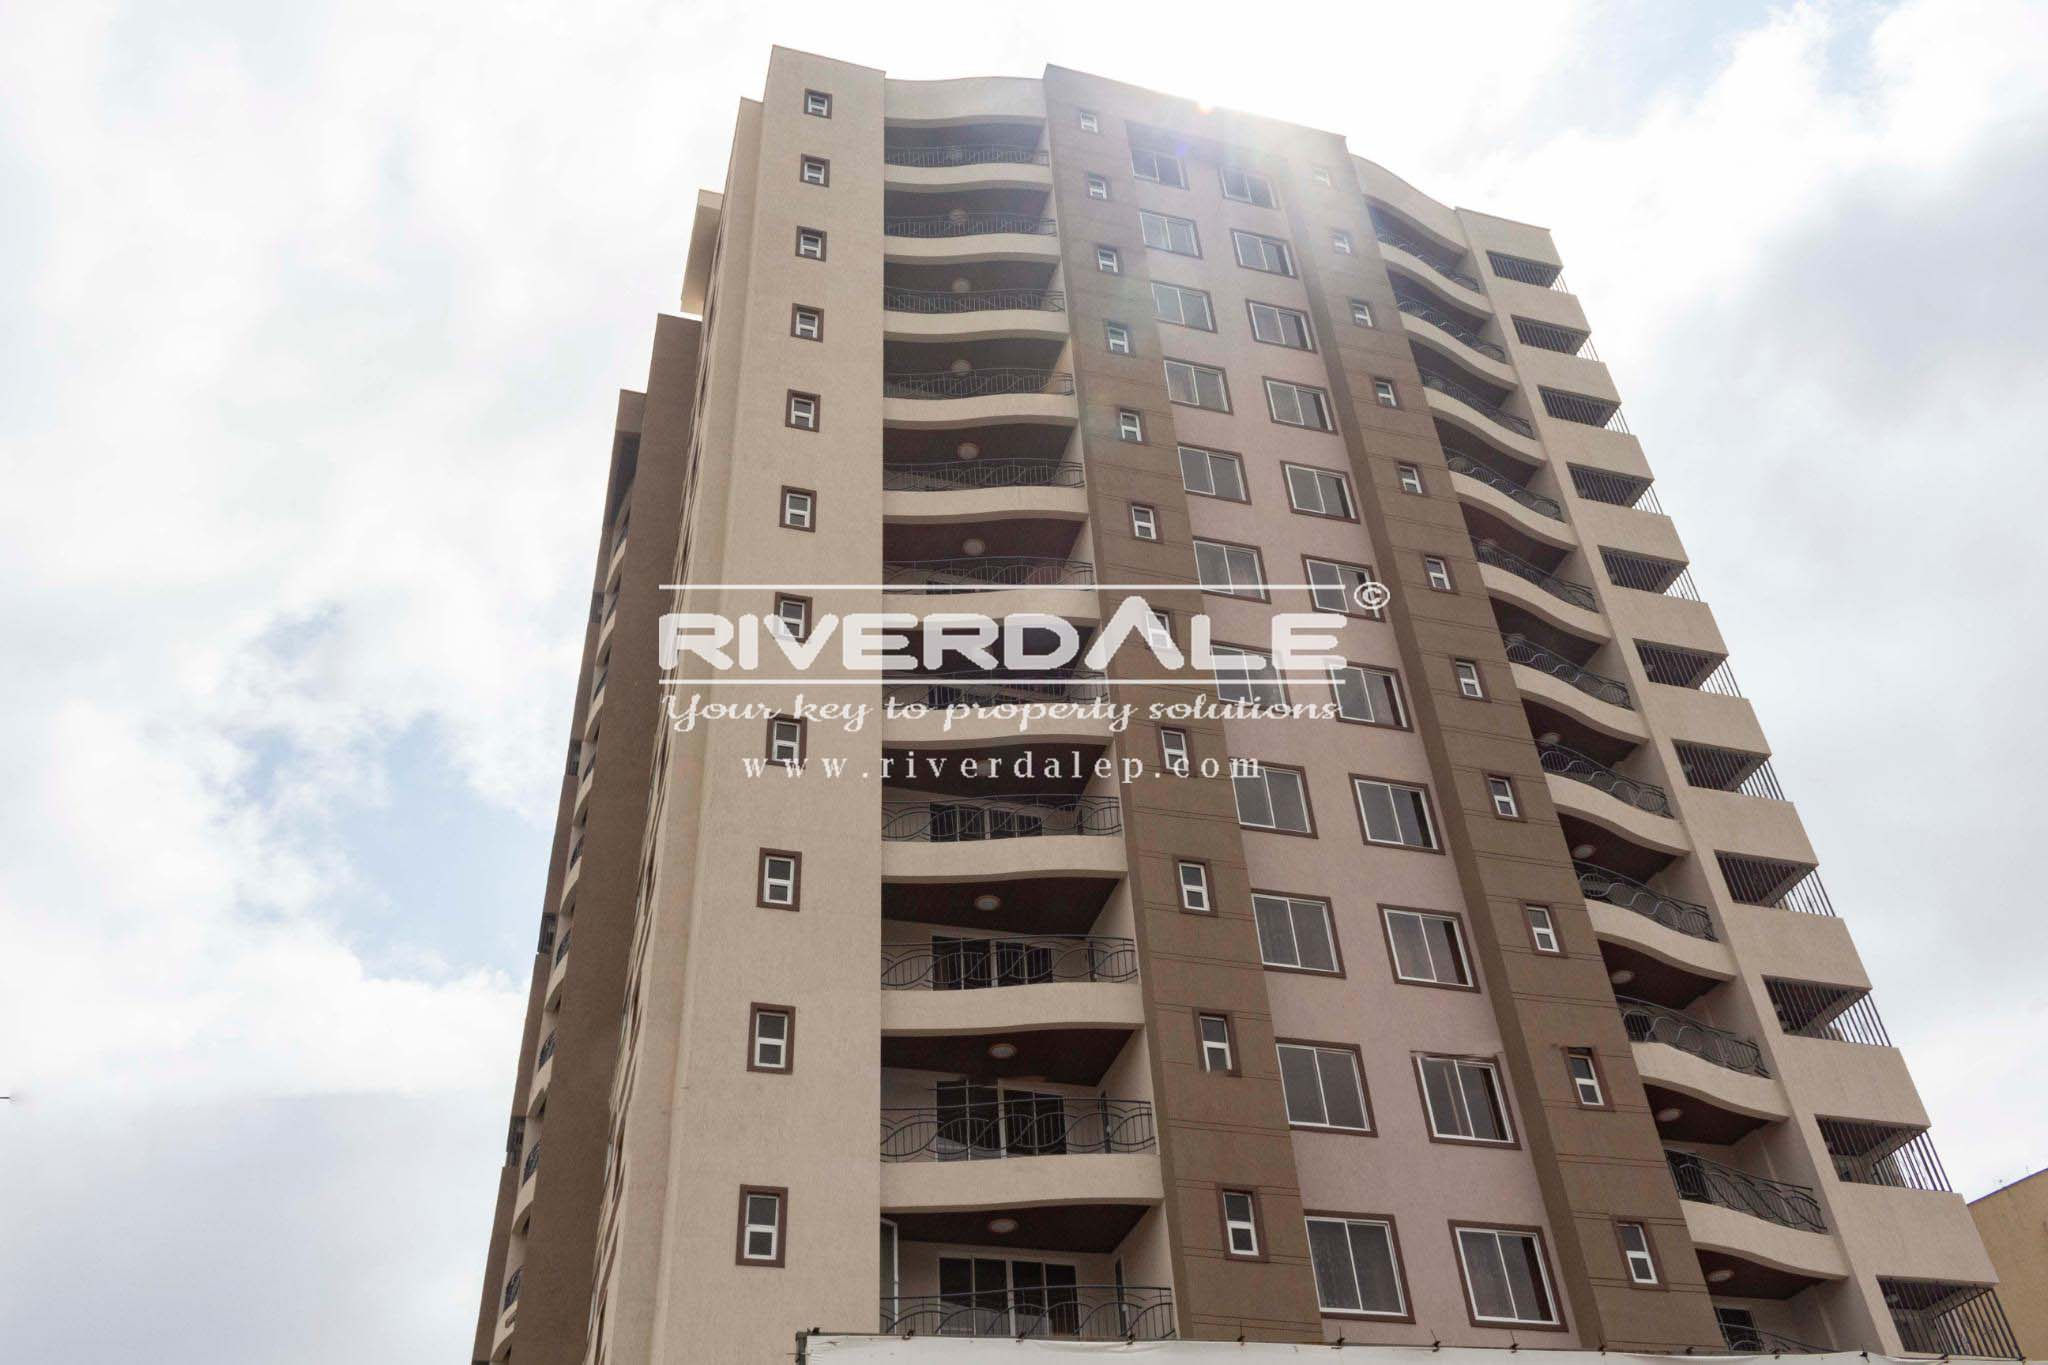 Elegant 3 & 4 Bedroom Duplex Fully Furnished Apartments For Sale In Hurlingham